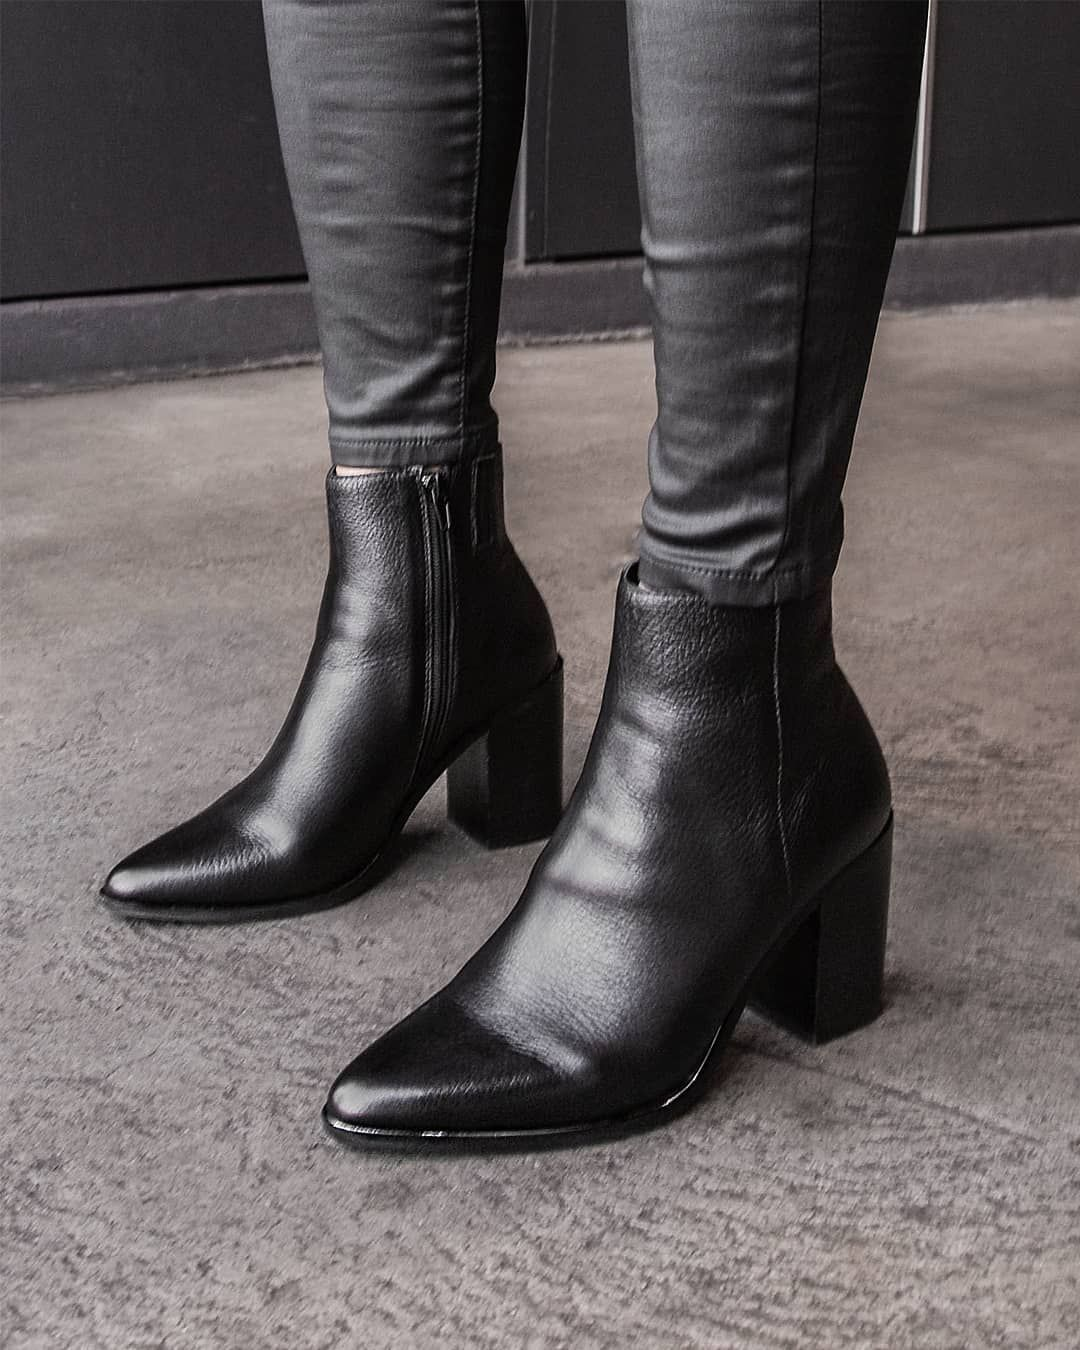 b099d19cf07 The perfect little black boot just got better with LORNE! #JoMercer ...